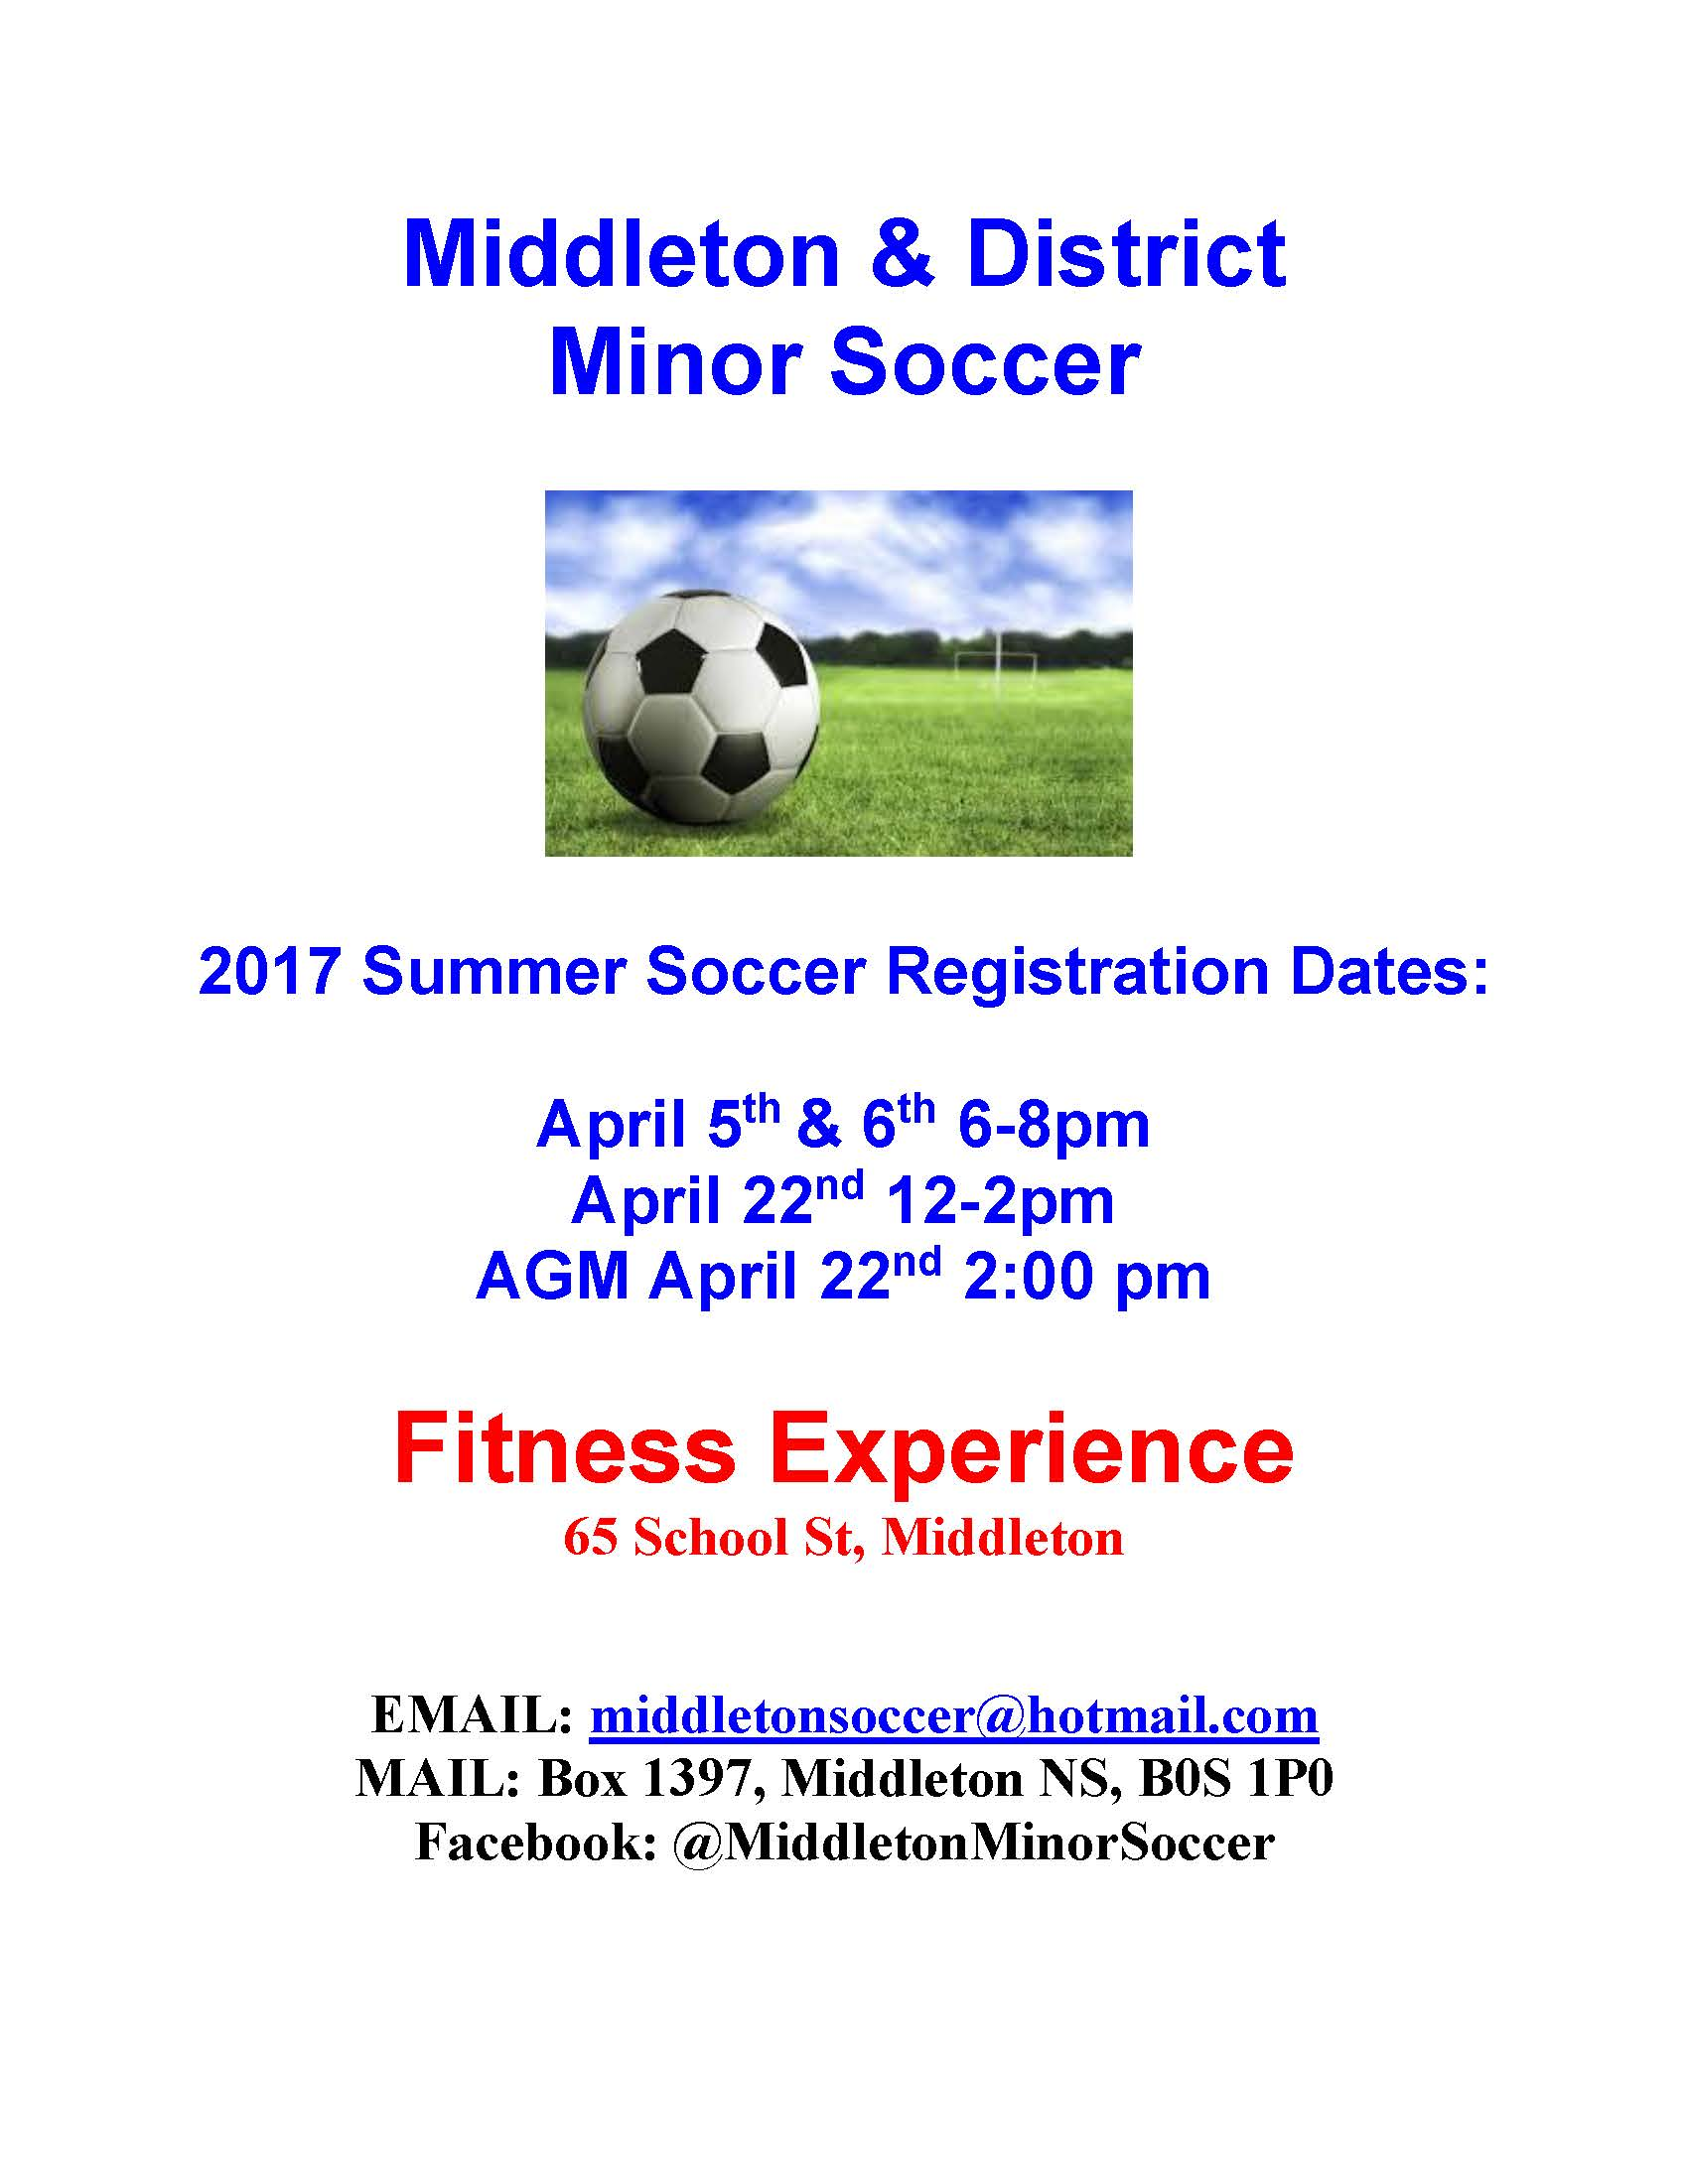 Middleton Soccer Registration dates2017